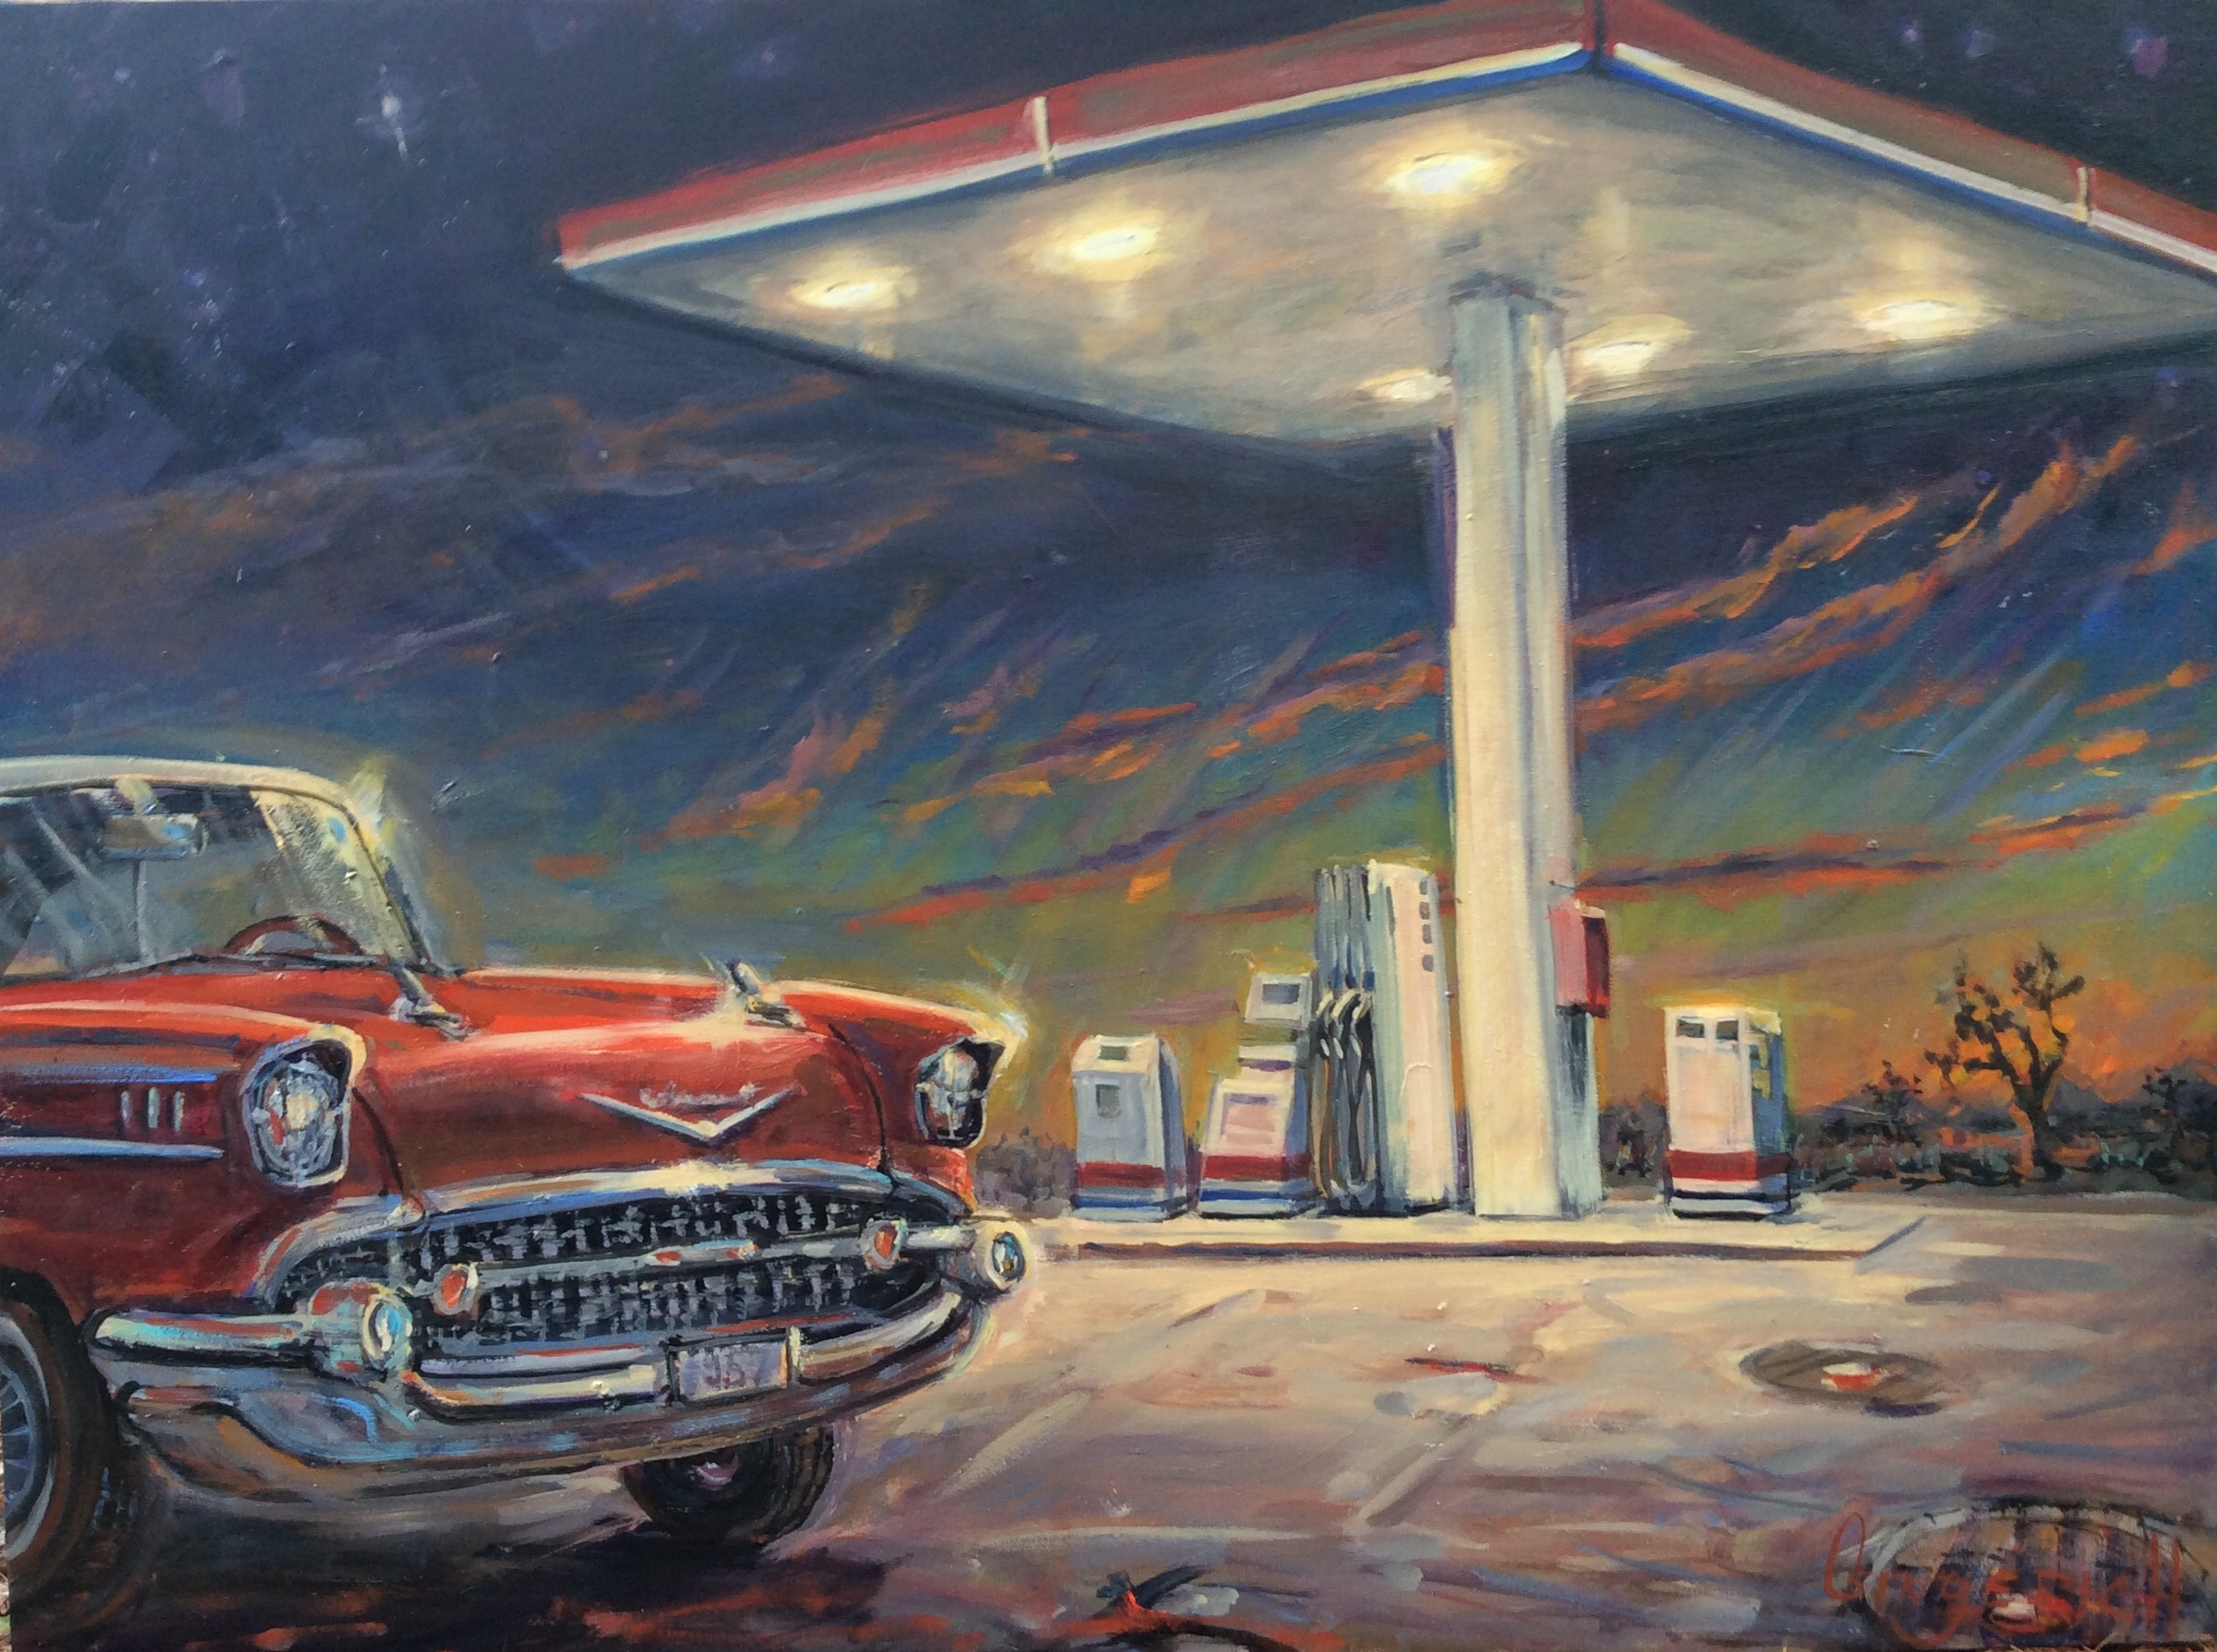 57 Chevy  36 x 48 inches, oil on canvas